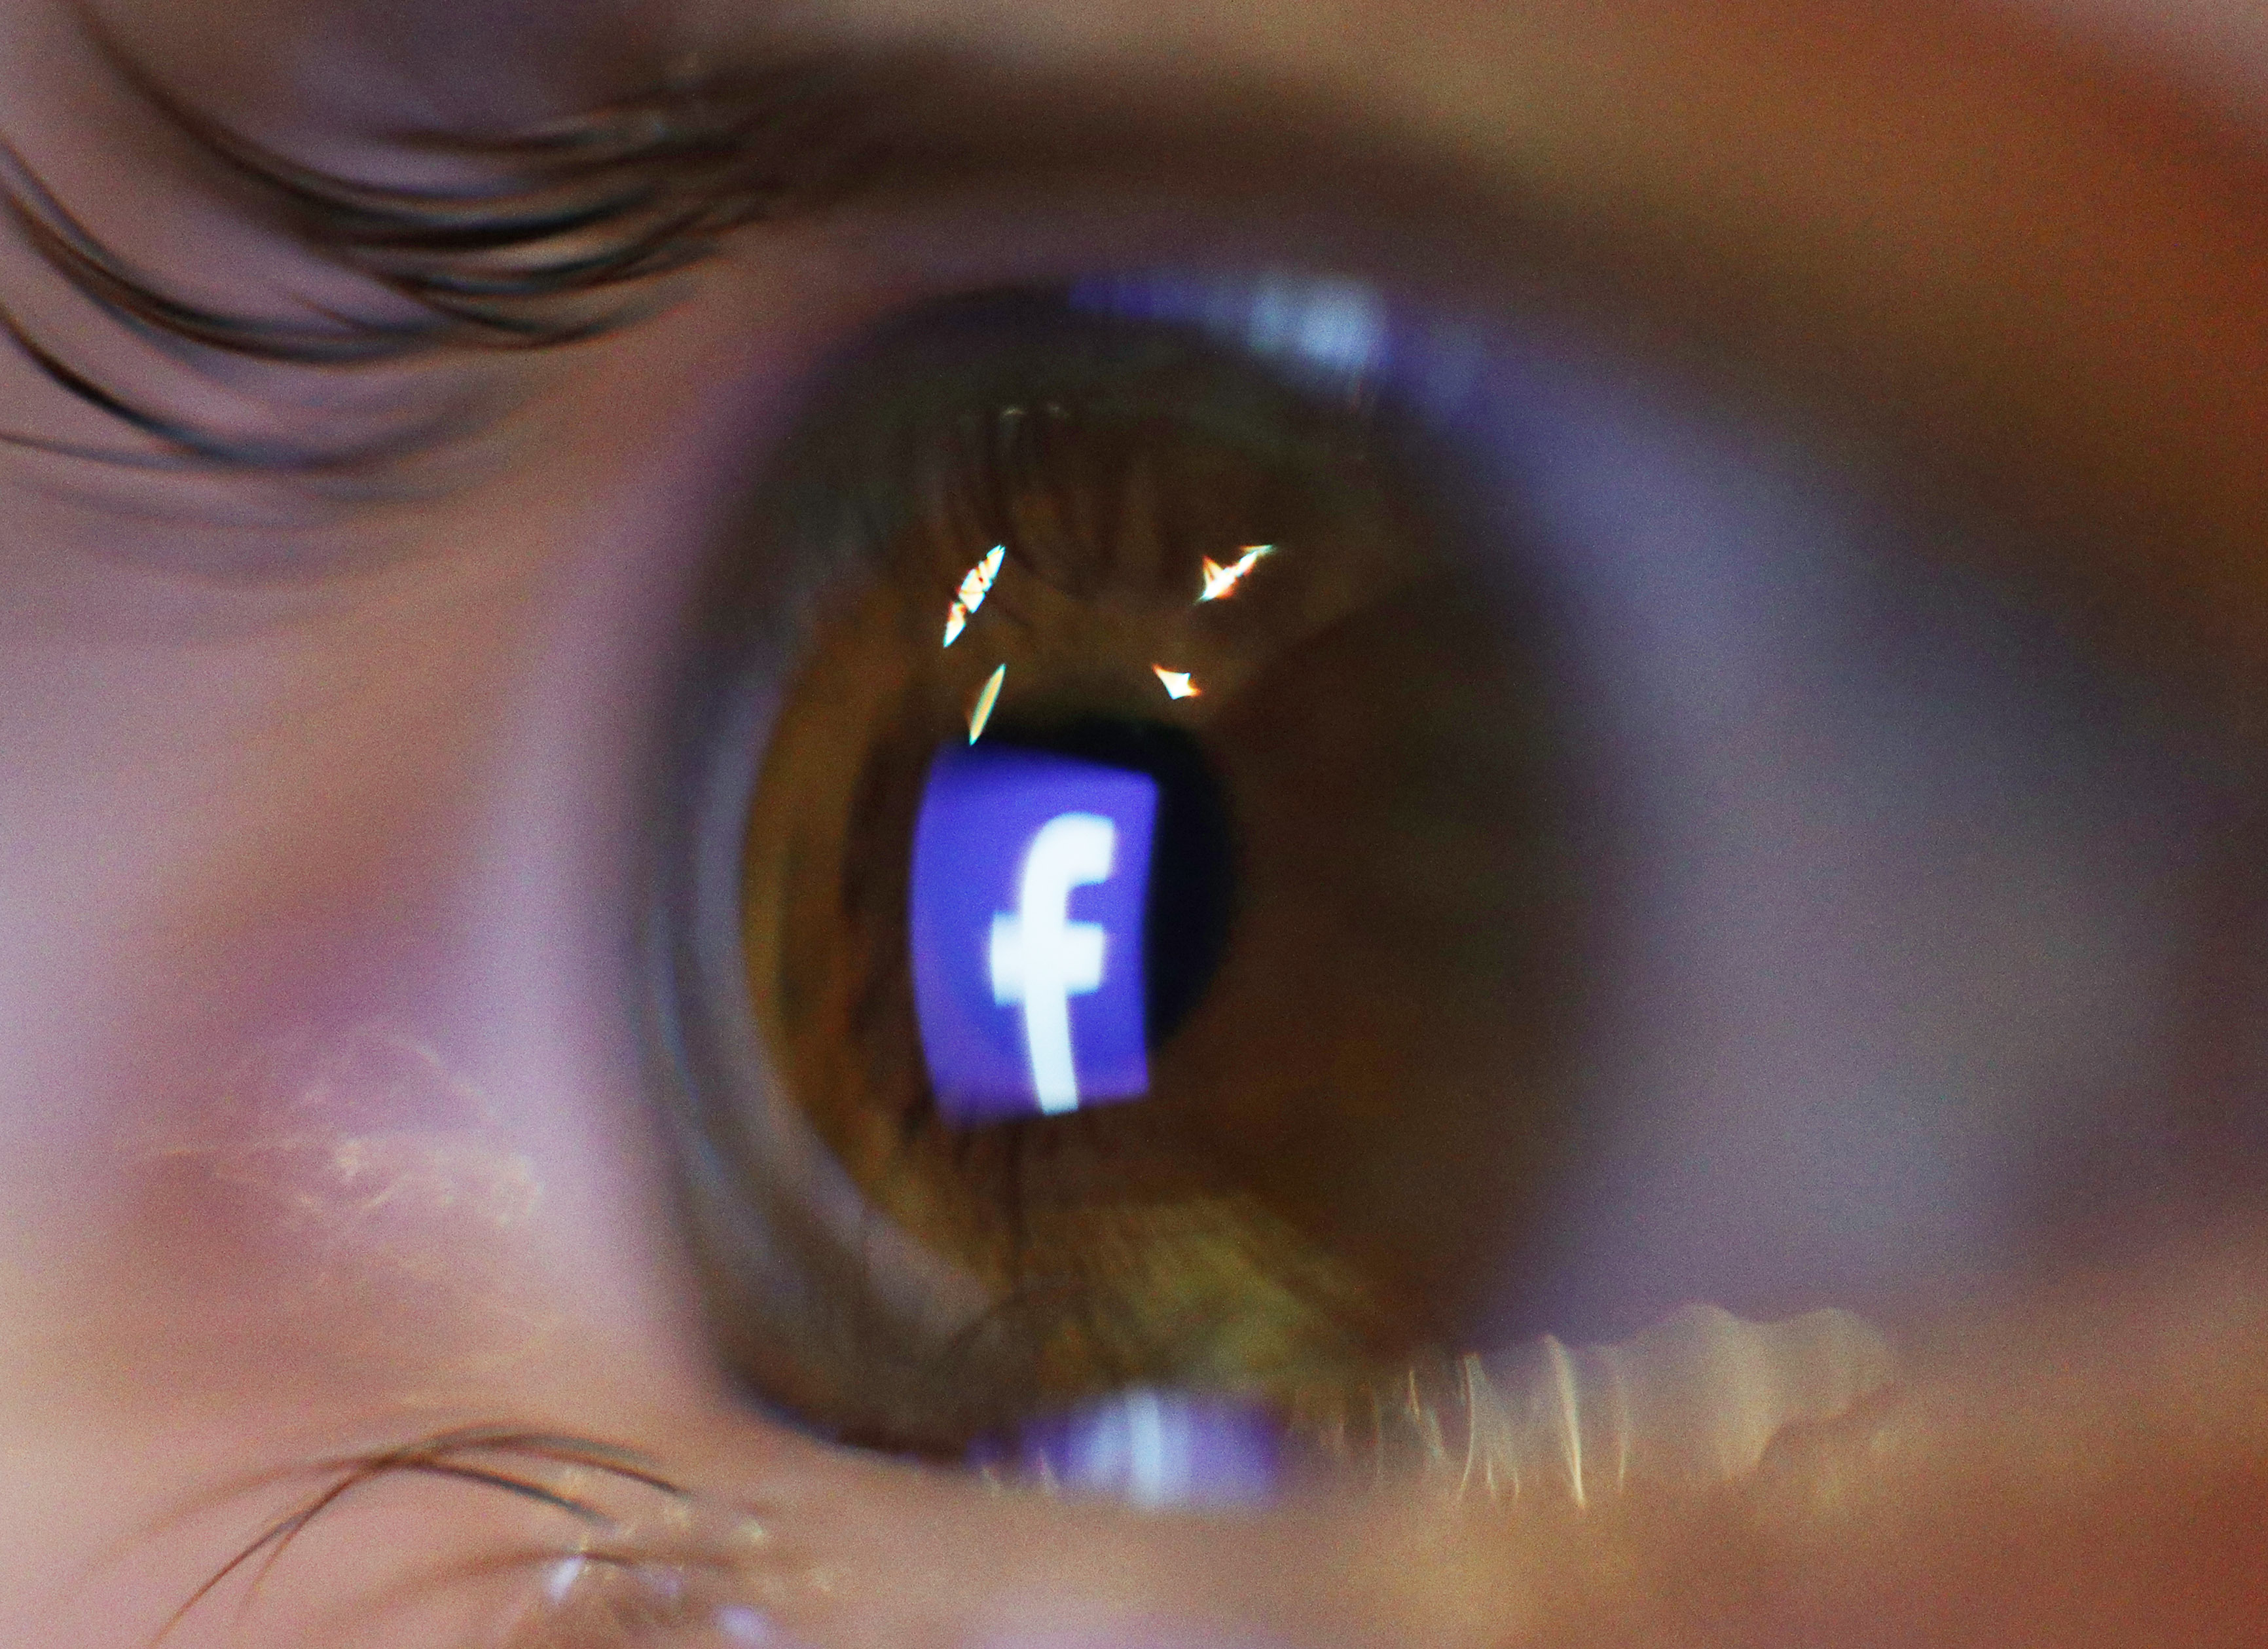 Did Facebook Troll You Today Like The Banter Merchants They Are?